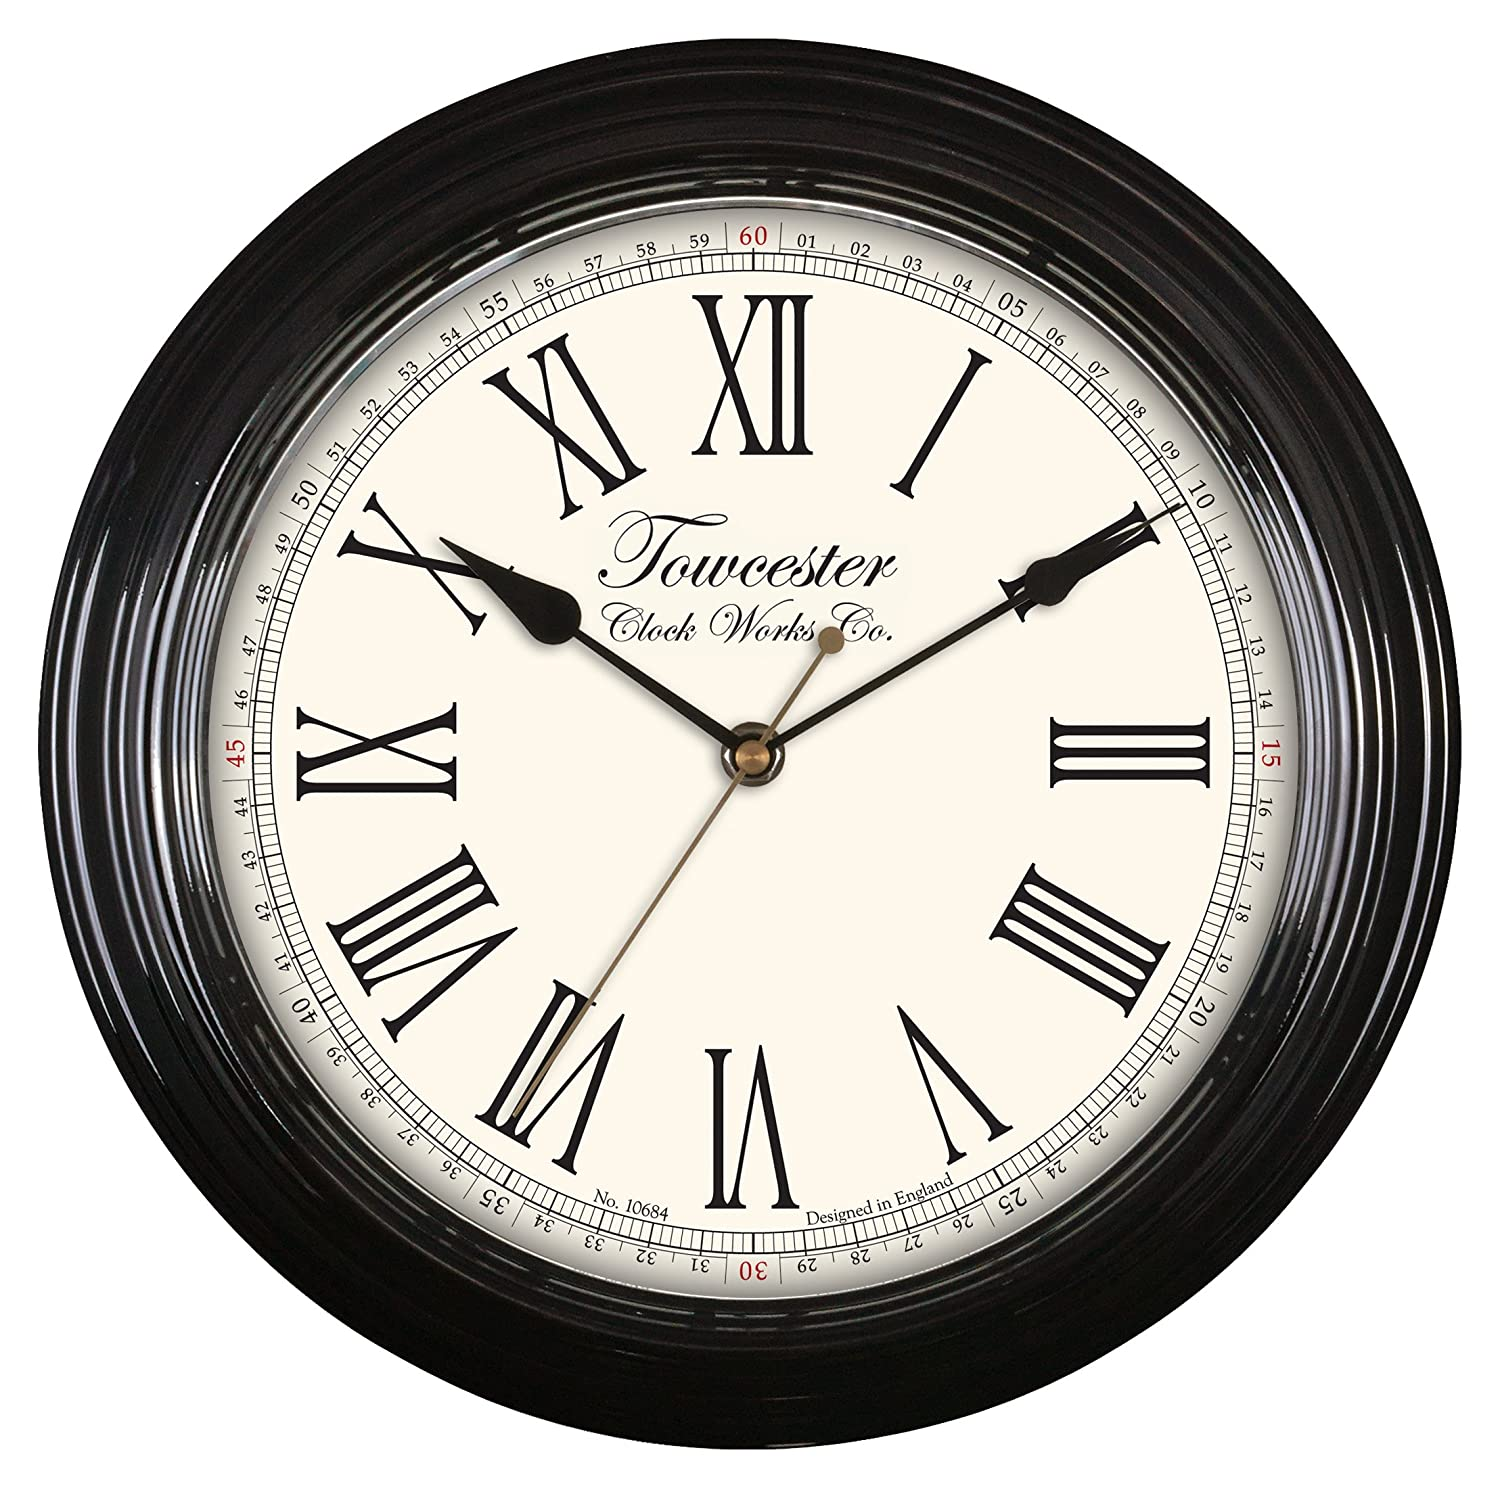 Acctim 26703 Redbourn Wall Clock, Black